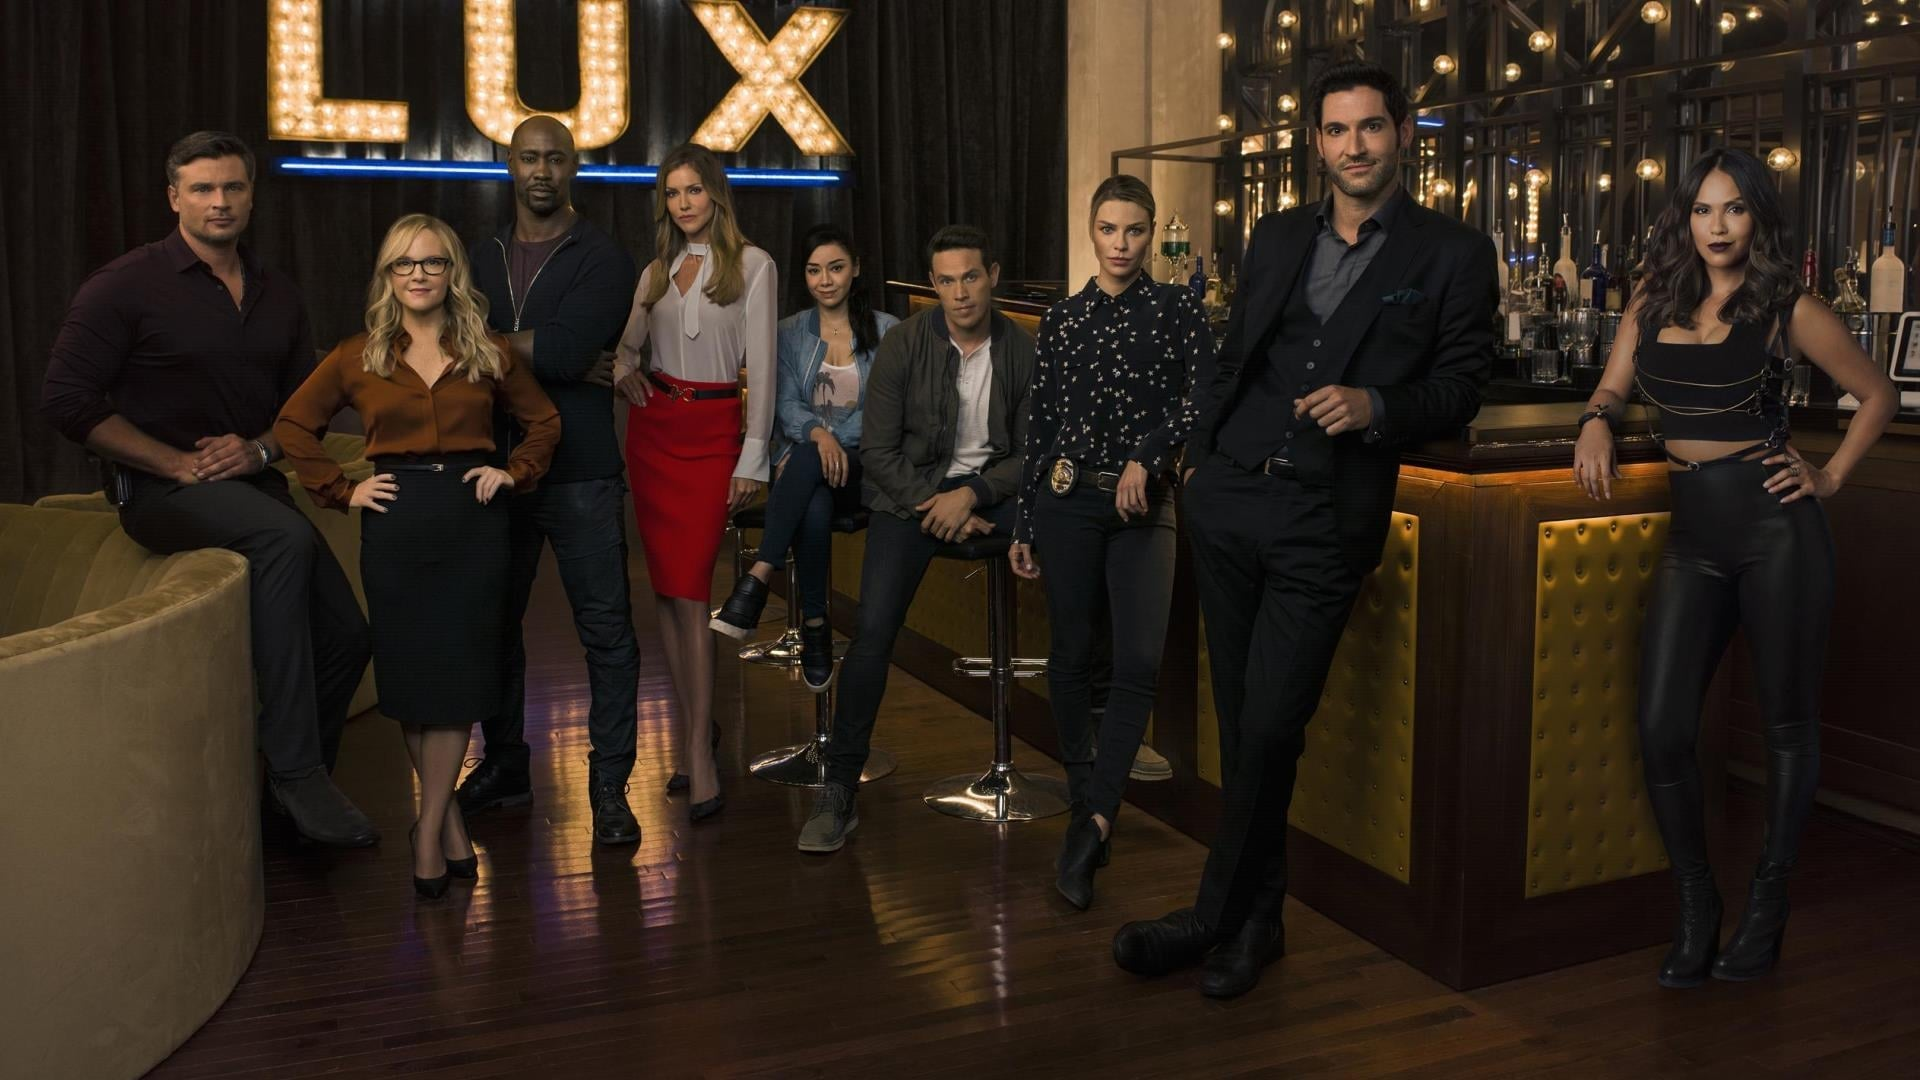 Lucifer - Season 5